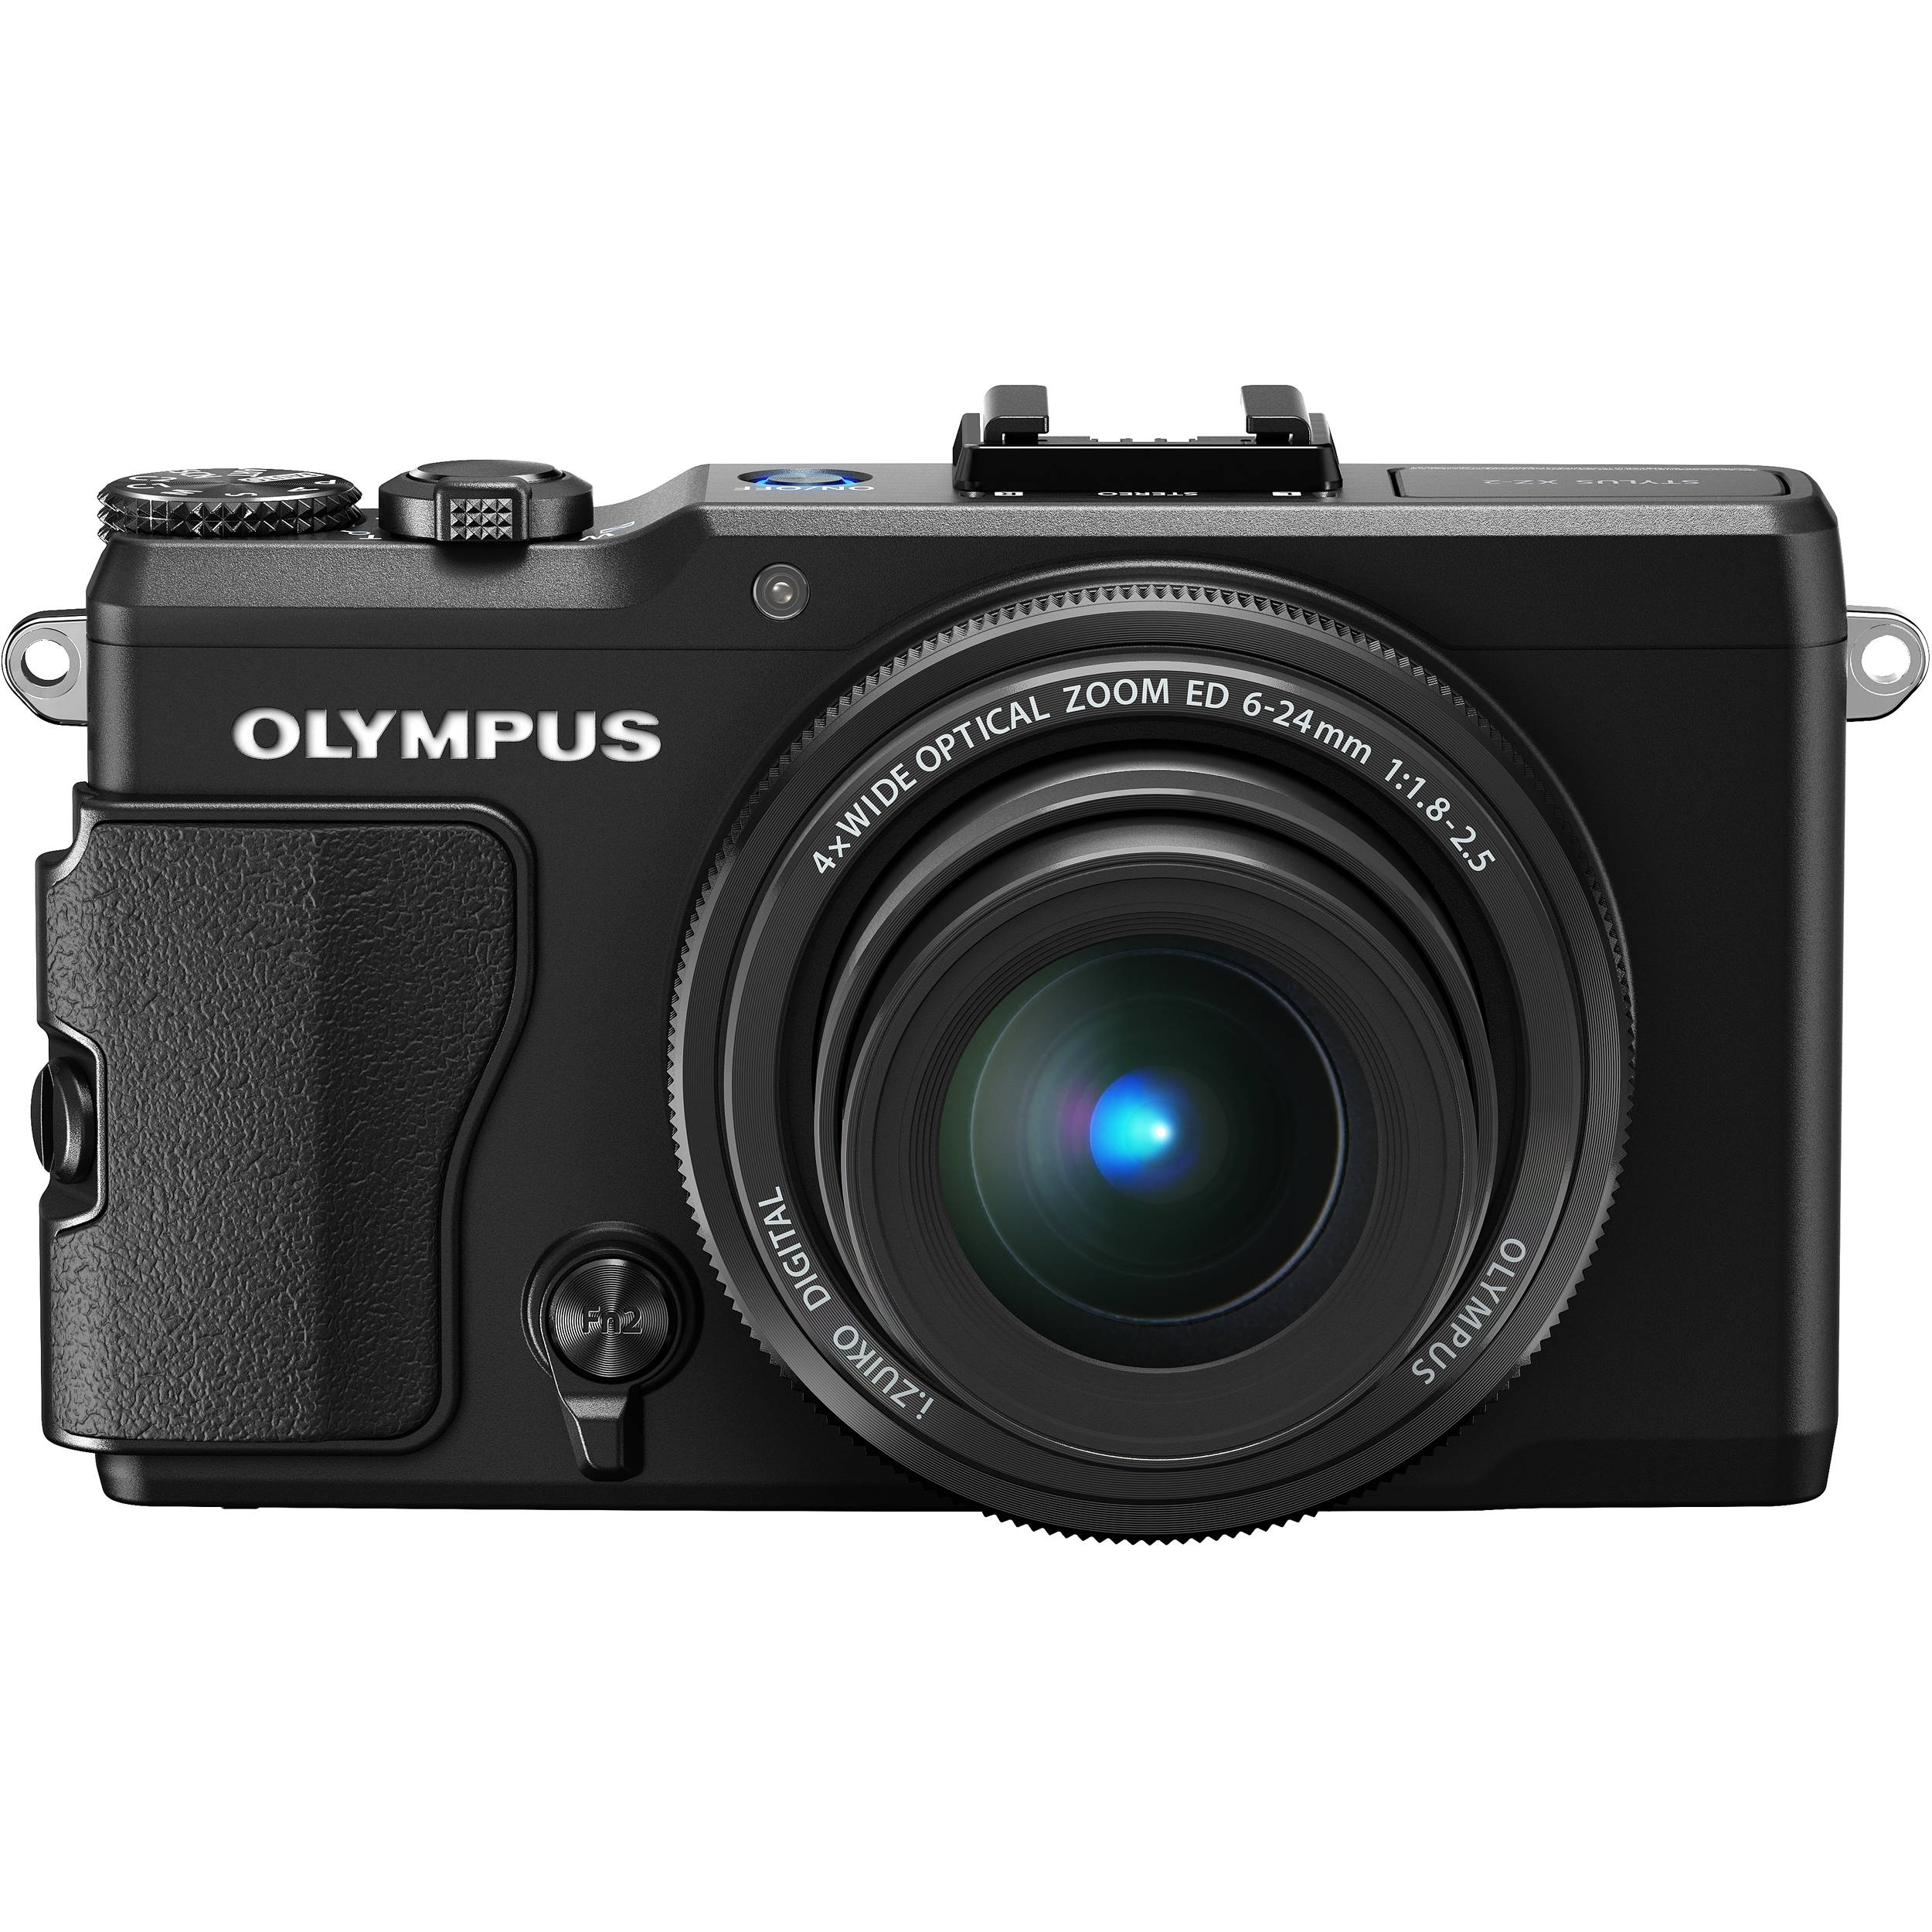 Olympus Digital Camera: Olympus STYLUS XZ-2 IHS Digital Camera (Black